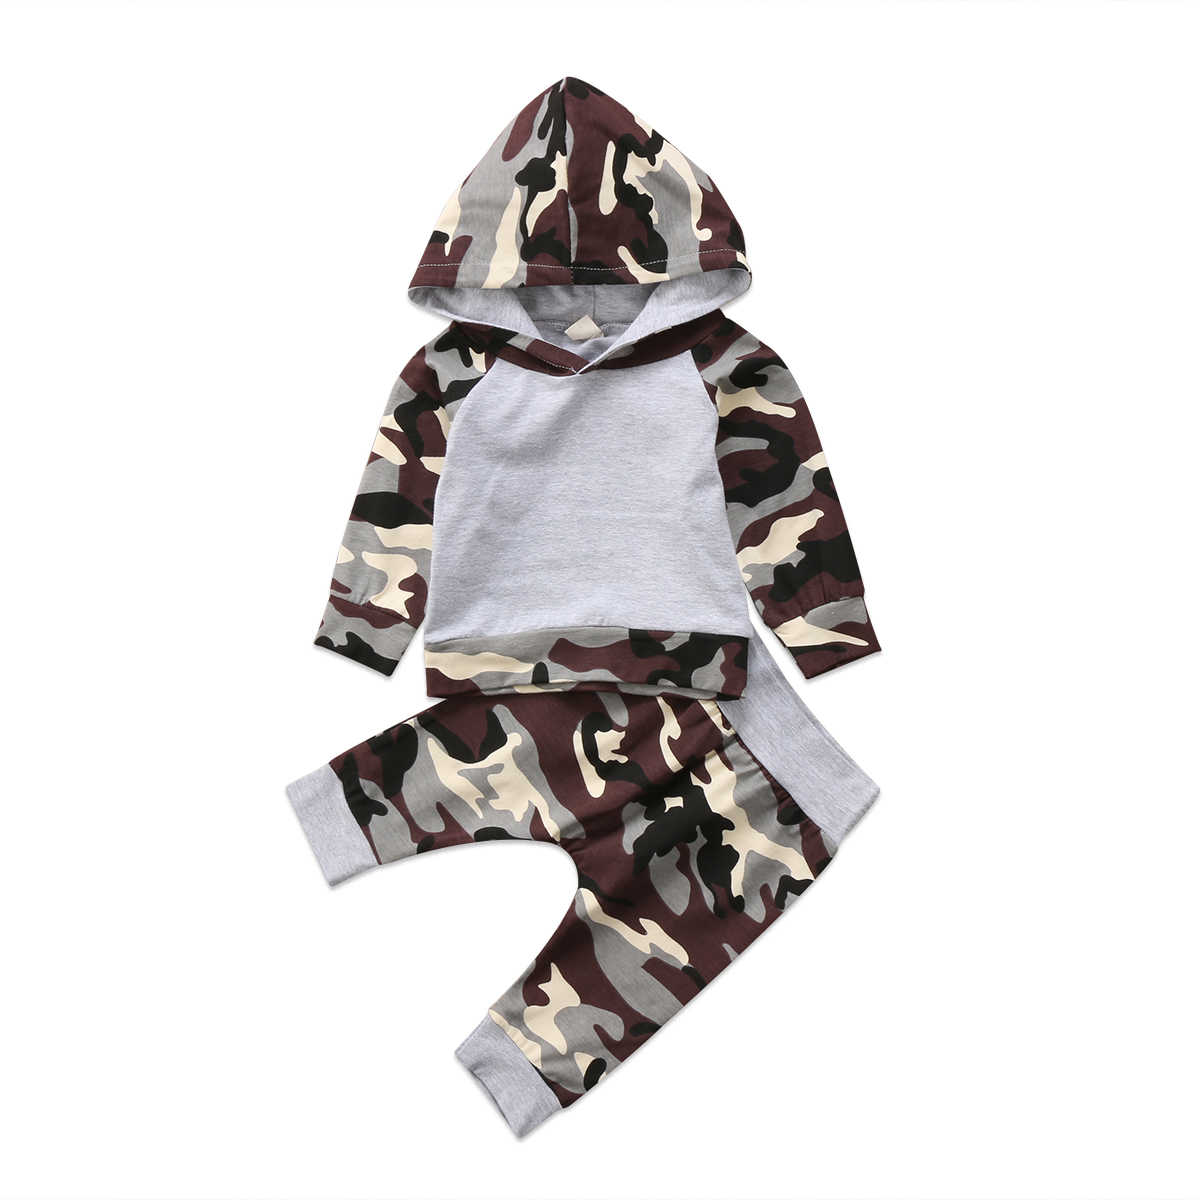 b3d3c92d591f8 Detail Feedback Questions about 2Pcs Newborn Toddler Baby Clothes Set Army  Green Baby Boys Camo Hoodie Tops Pants Outfits Set Clothes 0 24M on ...